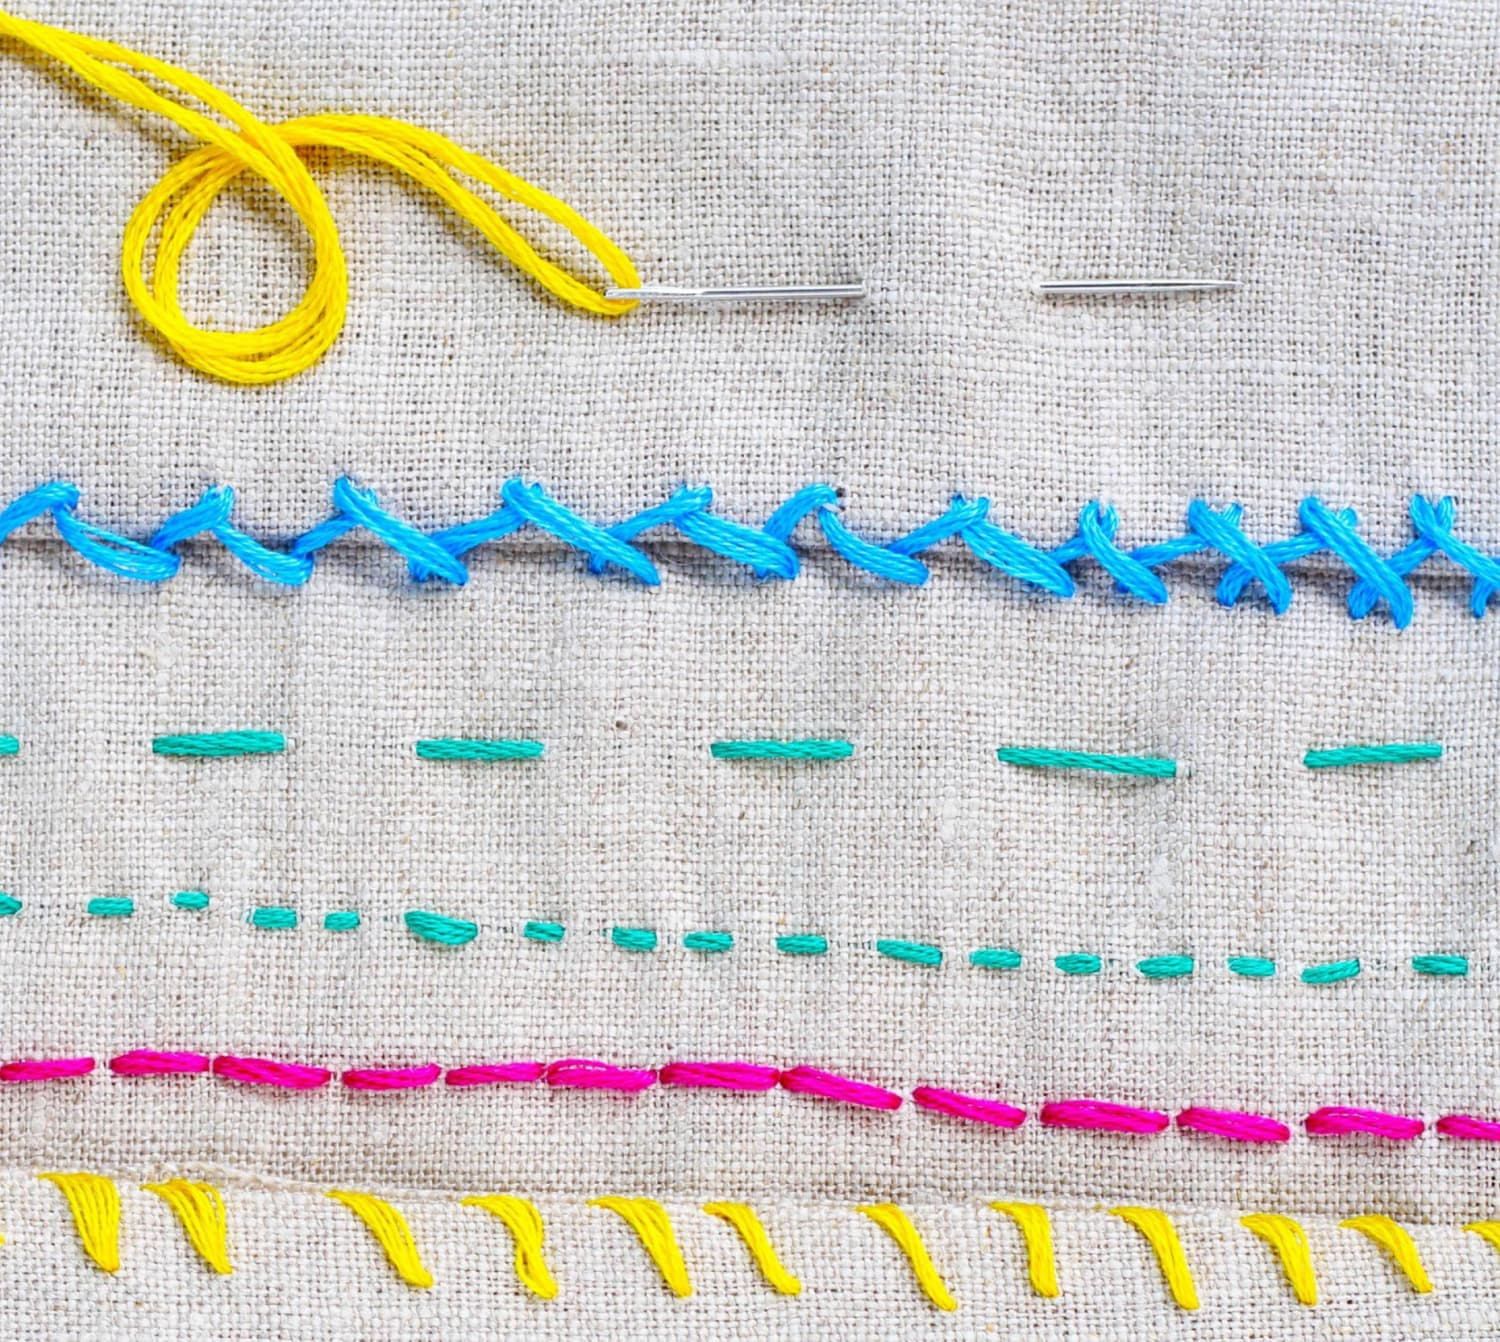 How to Sew Basic Stitches